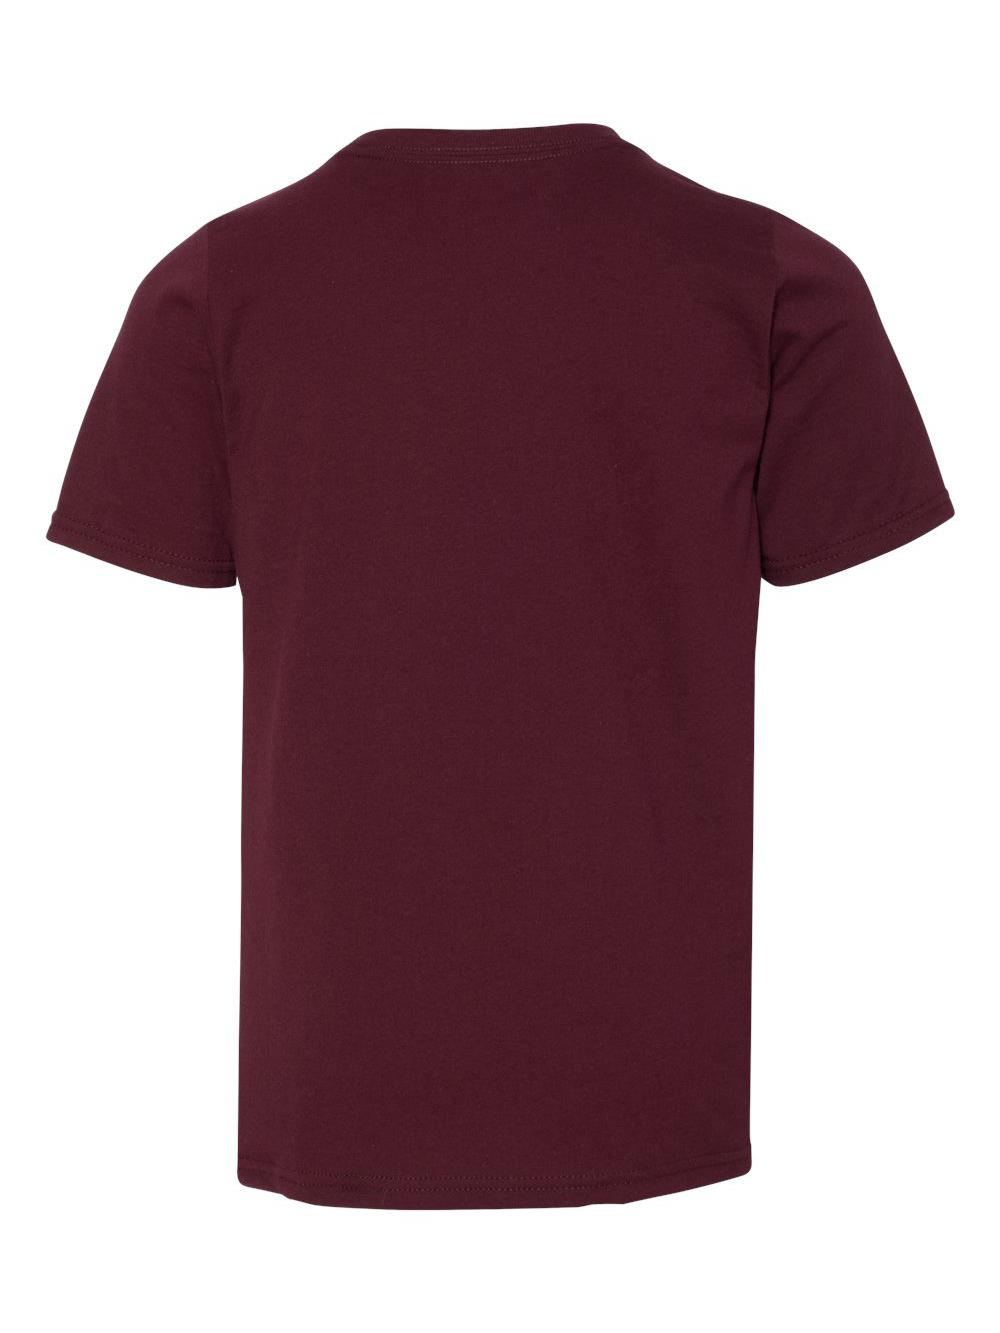 5cbee55d Russell Athletic Big Boys' Essential Short Sleeve Tee Maroon L. About this  product. Picture 1 of 4; Picture 2 of 4; Picture 3 of 4; Picture 4 of 4